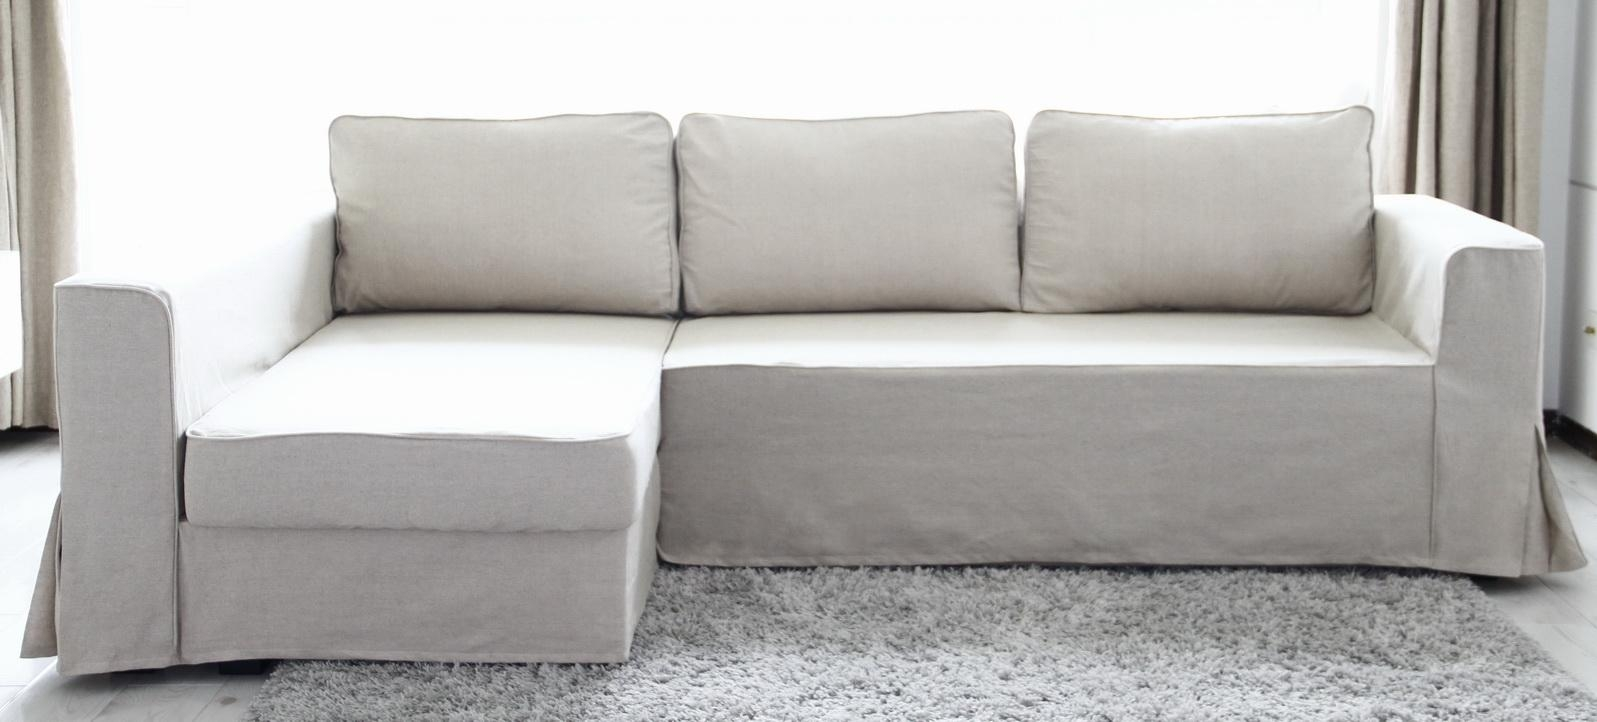 ▻ Sofa : 34 Wonderful Ikea Friheten Sofa Bed Sofa Beds Sofa With Manstad Sofa Bed With Storage From Ikea (View 12 of 20)